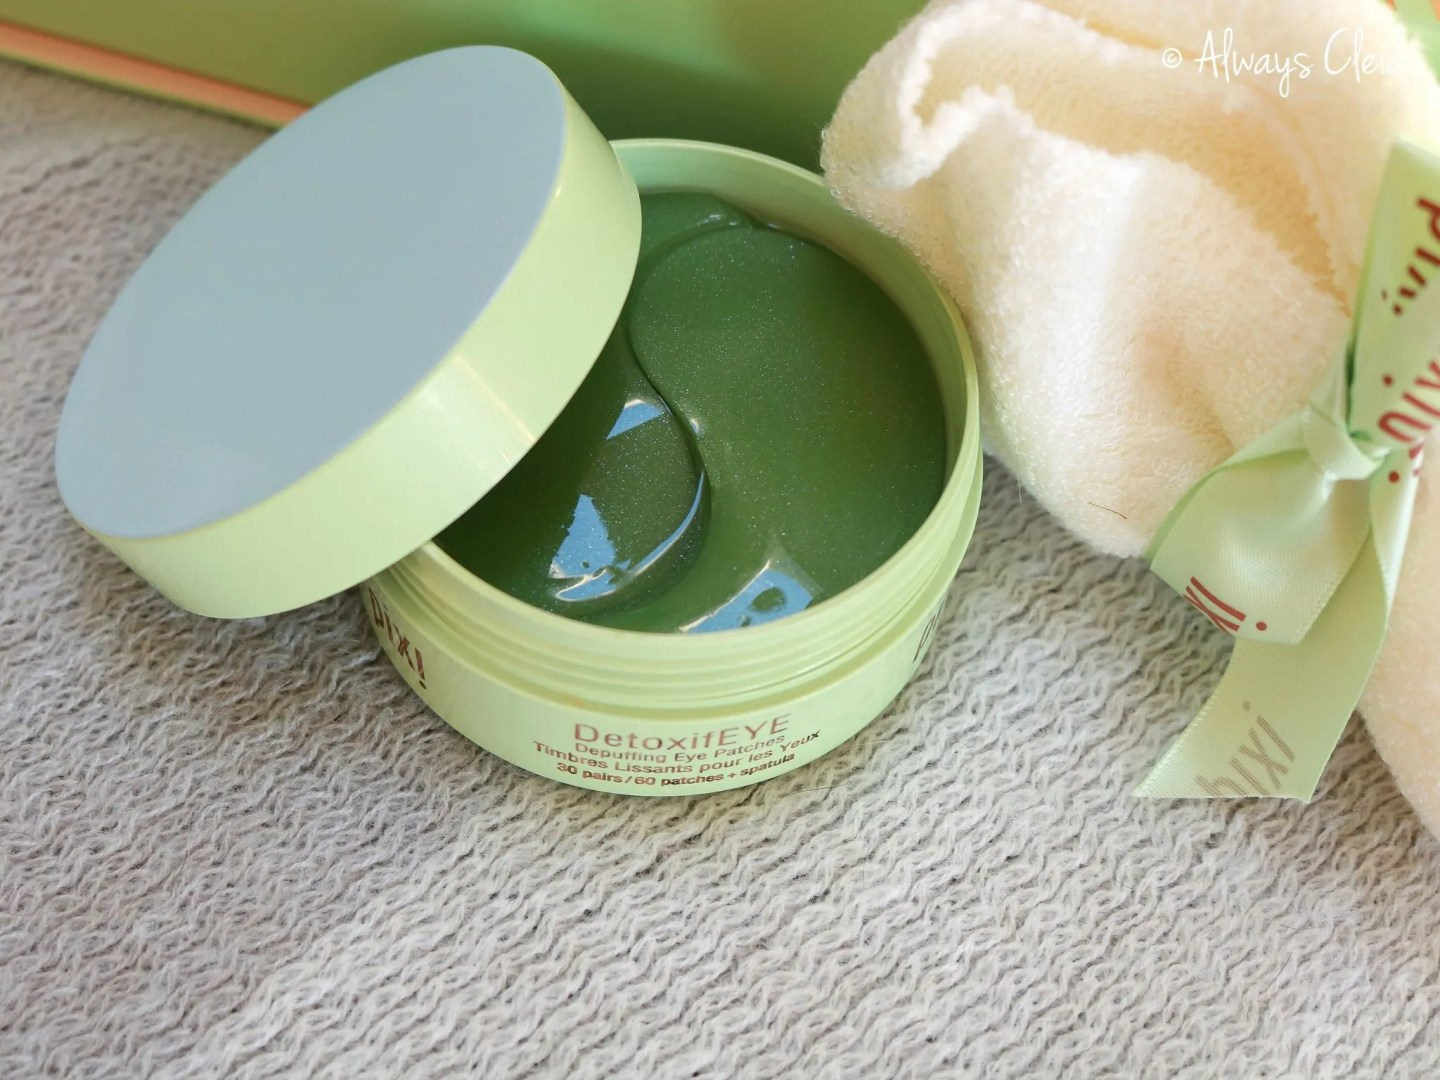 Pixi Beauty DetoxifEYE